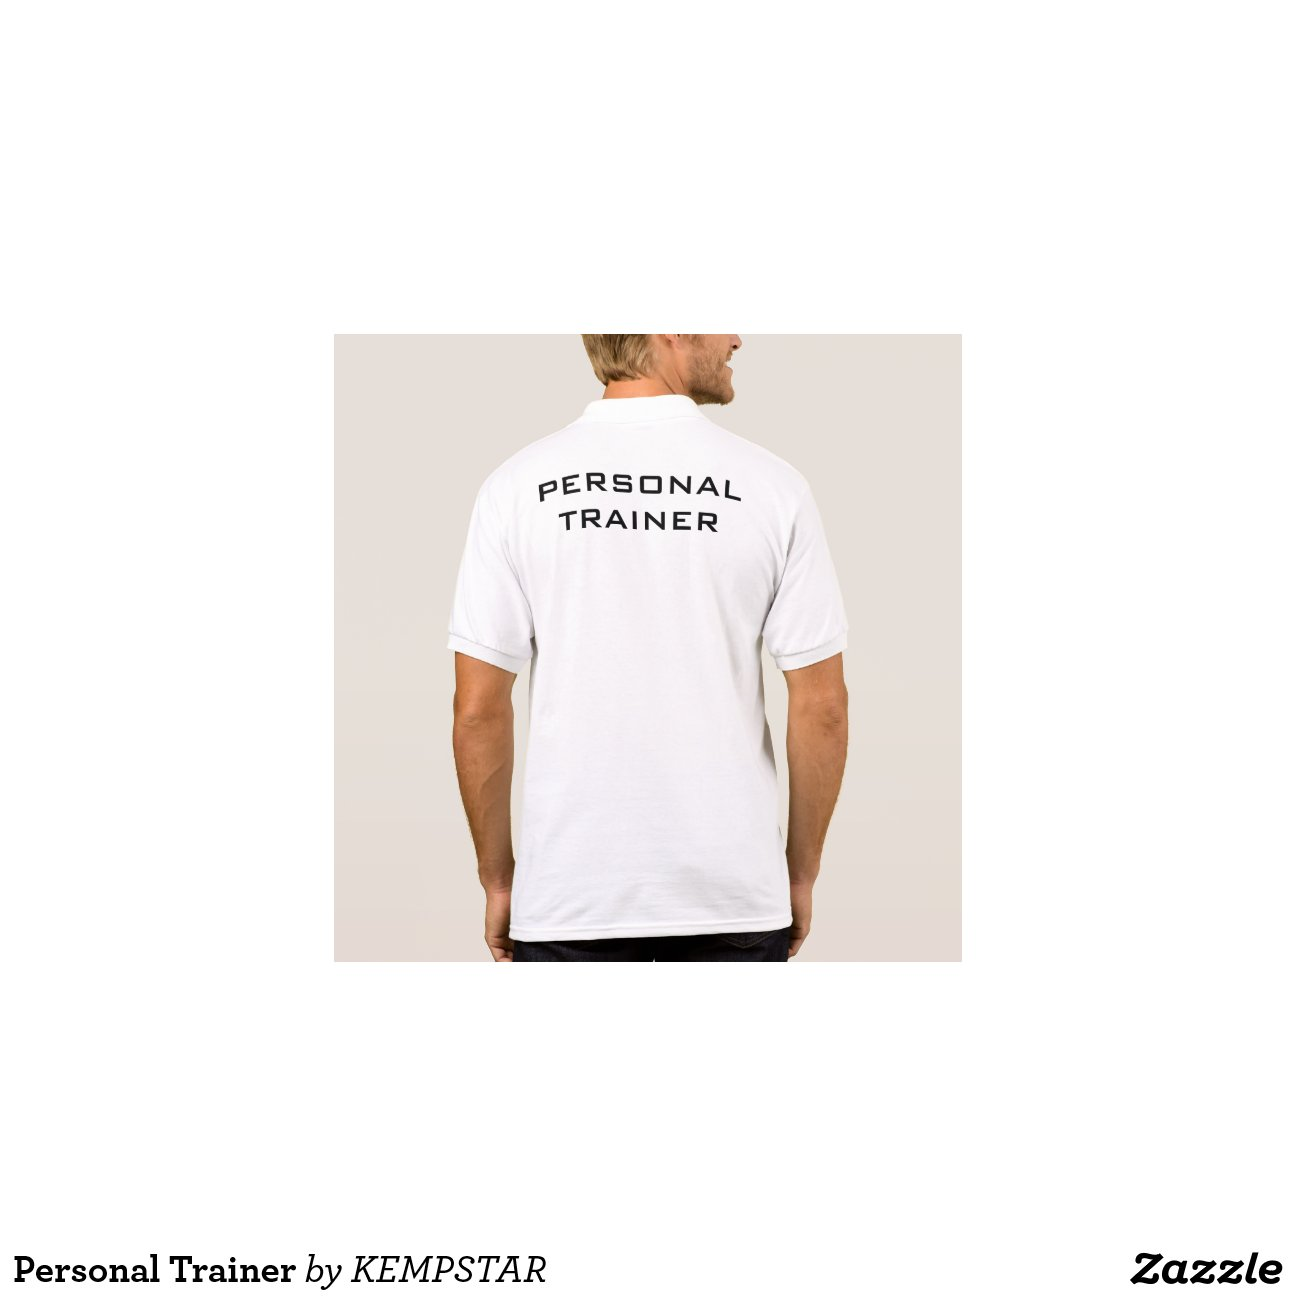 Personal Trainer T Shirt Designs